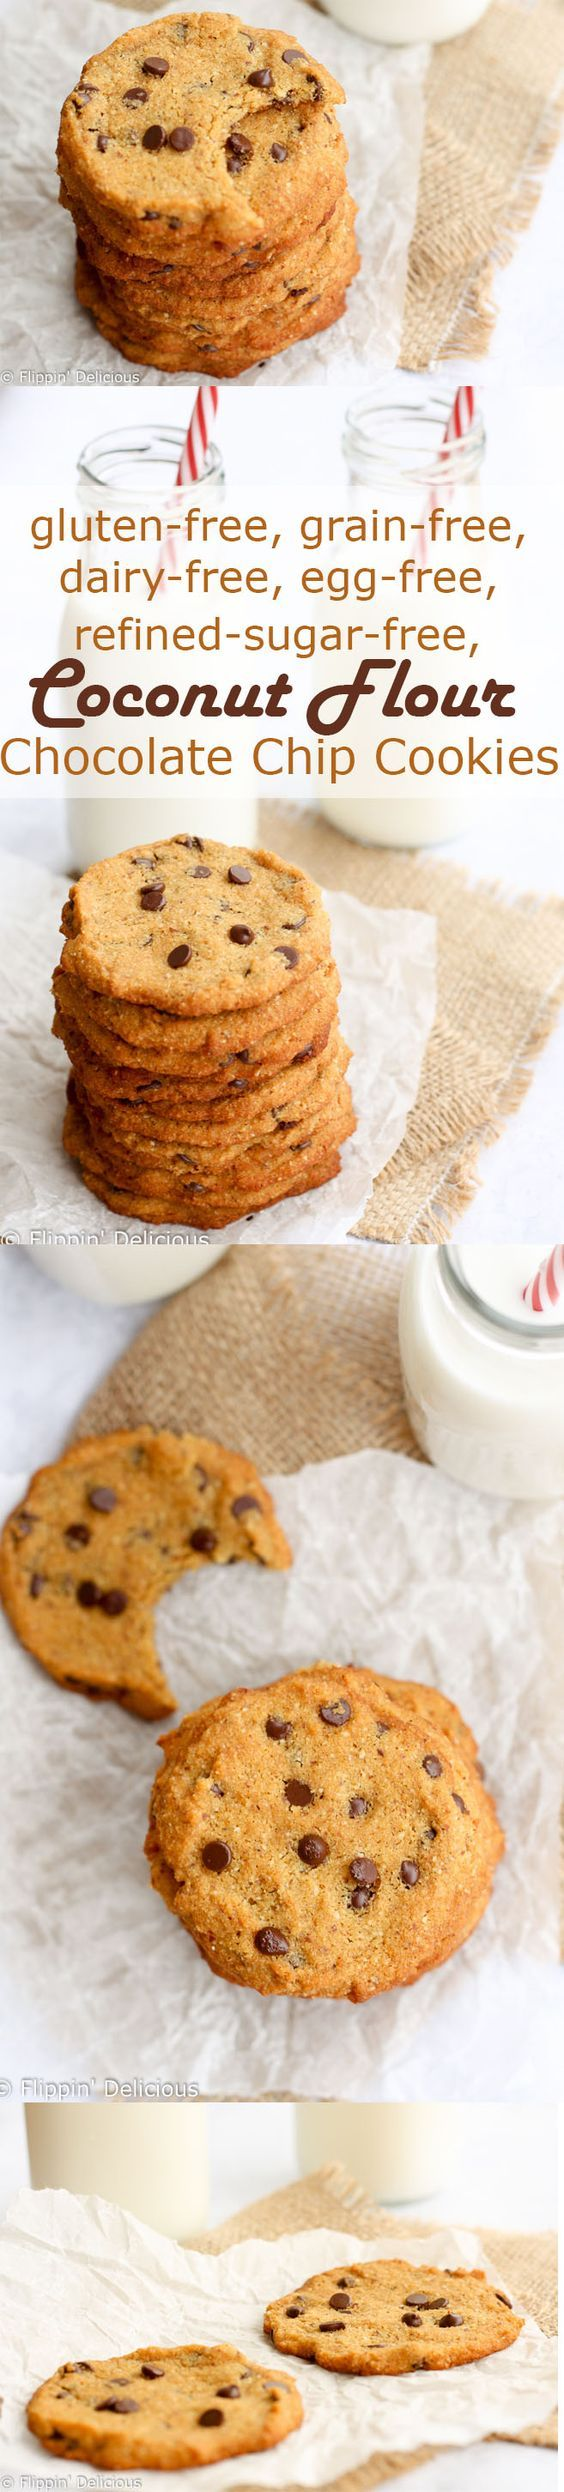 Coconut flour cookies are for just about anyone to eat - they are gluten-free  dairy-free  grain-free  refined sugar-free  and egg-free. Super chewy and studded with chocolate chips  they go perfect with a glass of milk.